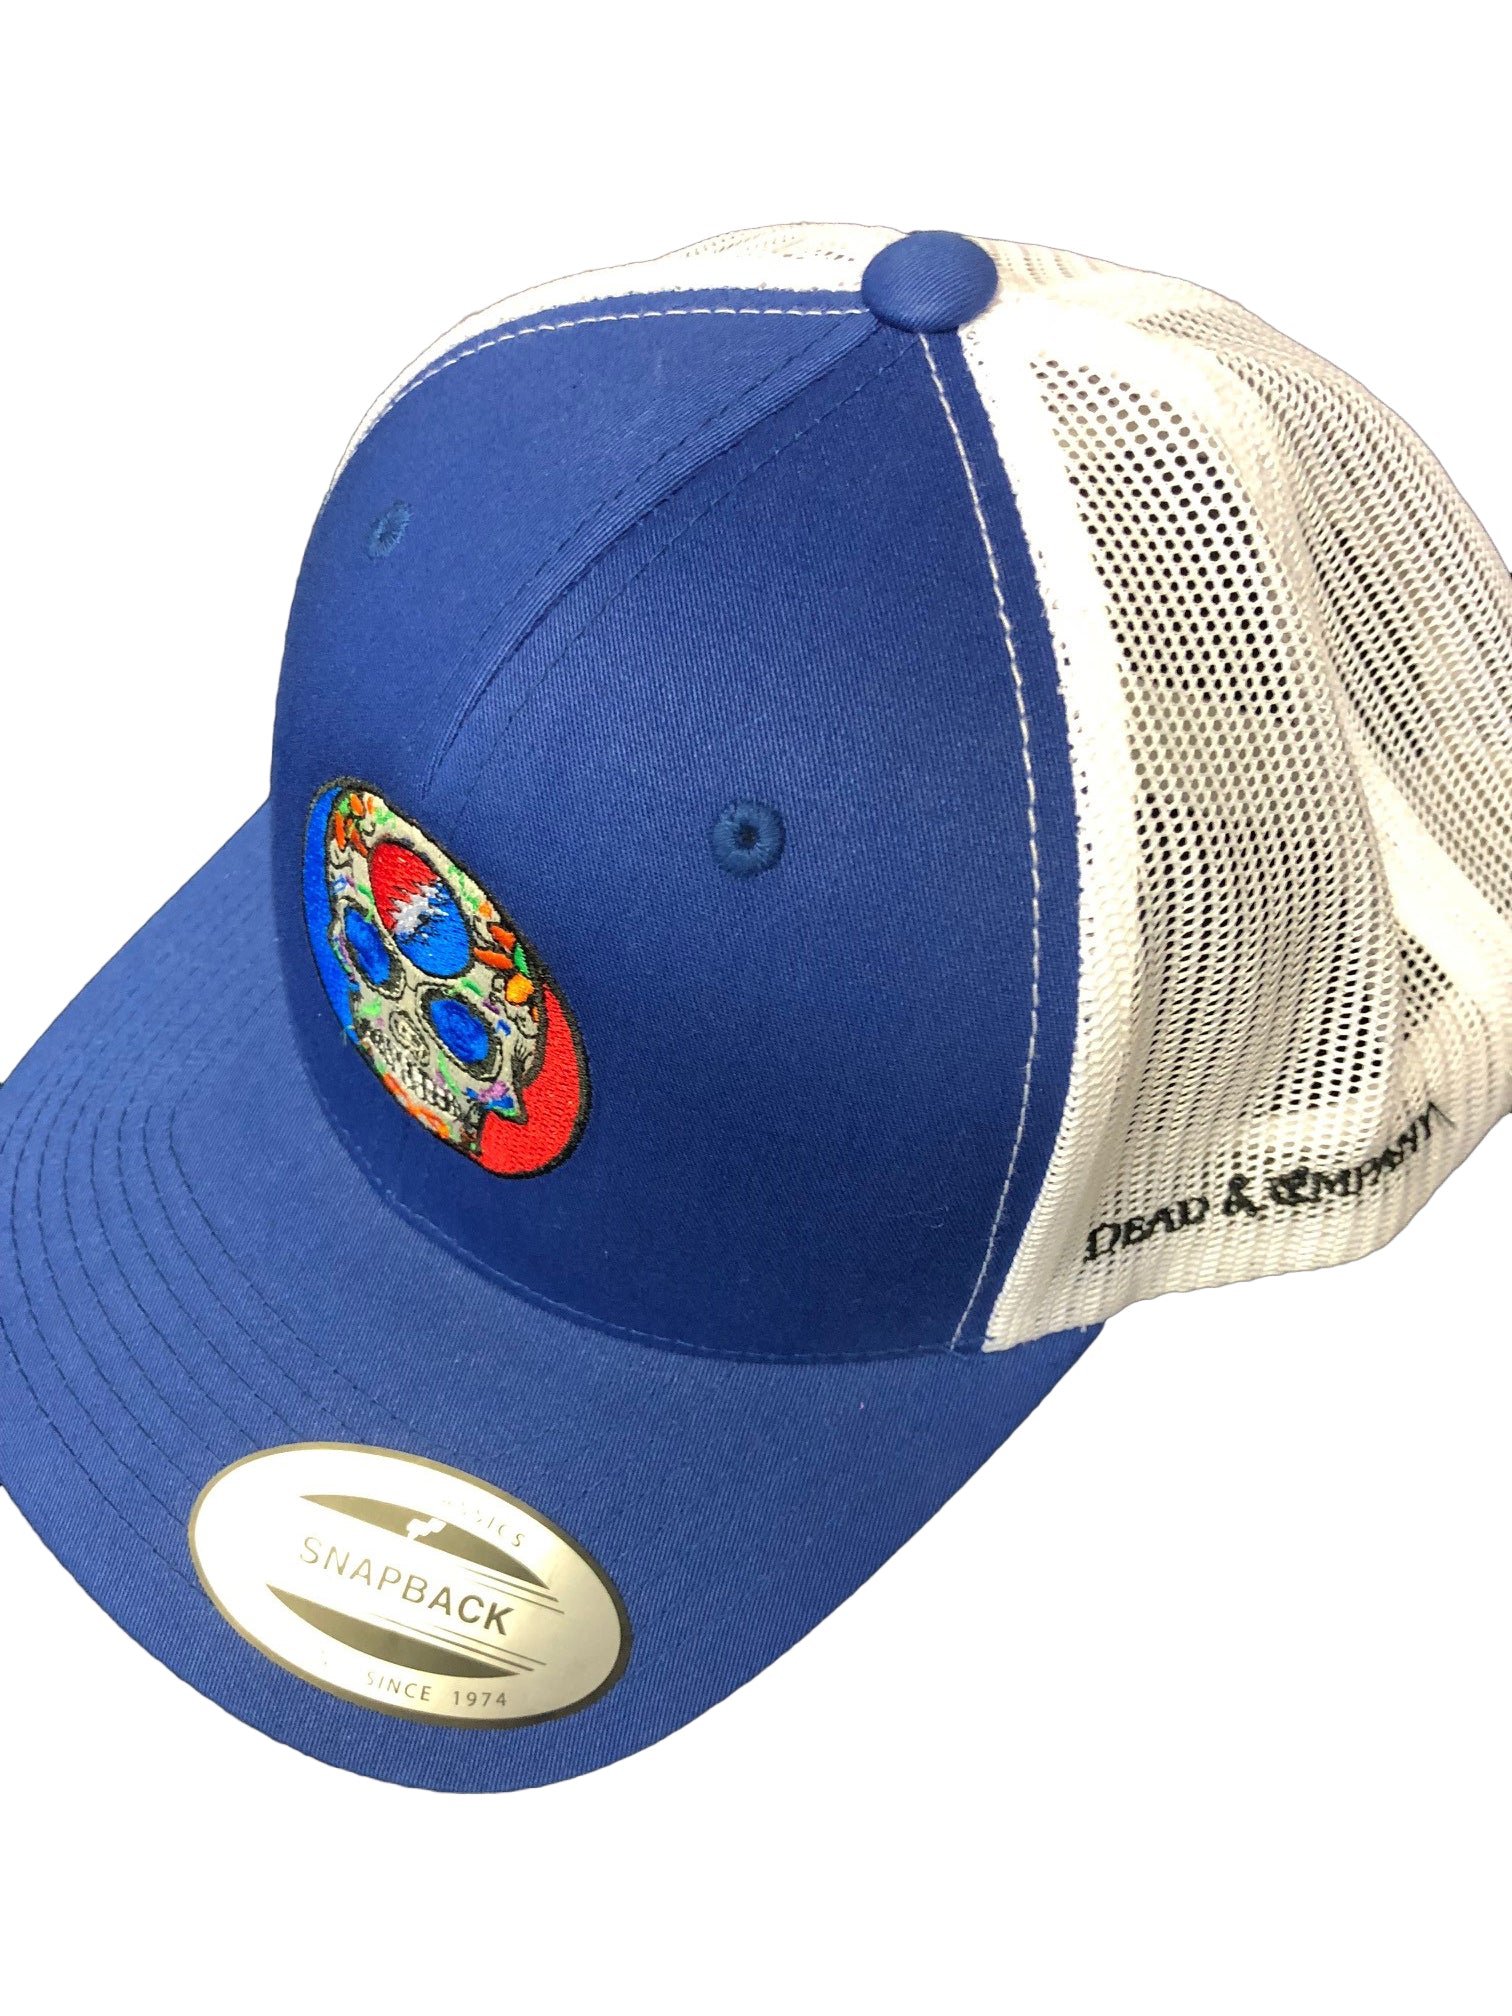 2018 Dead and Company Blue and White Trucker Hat side